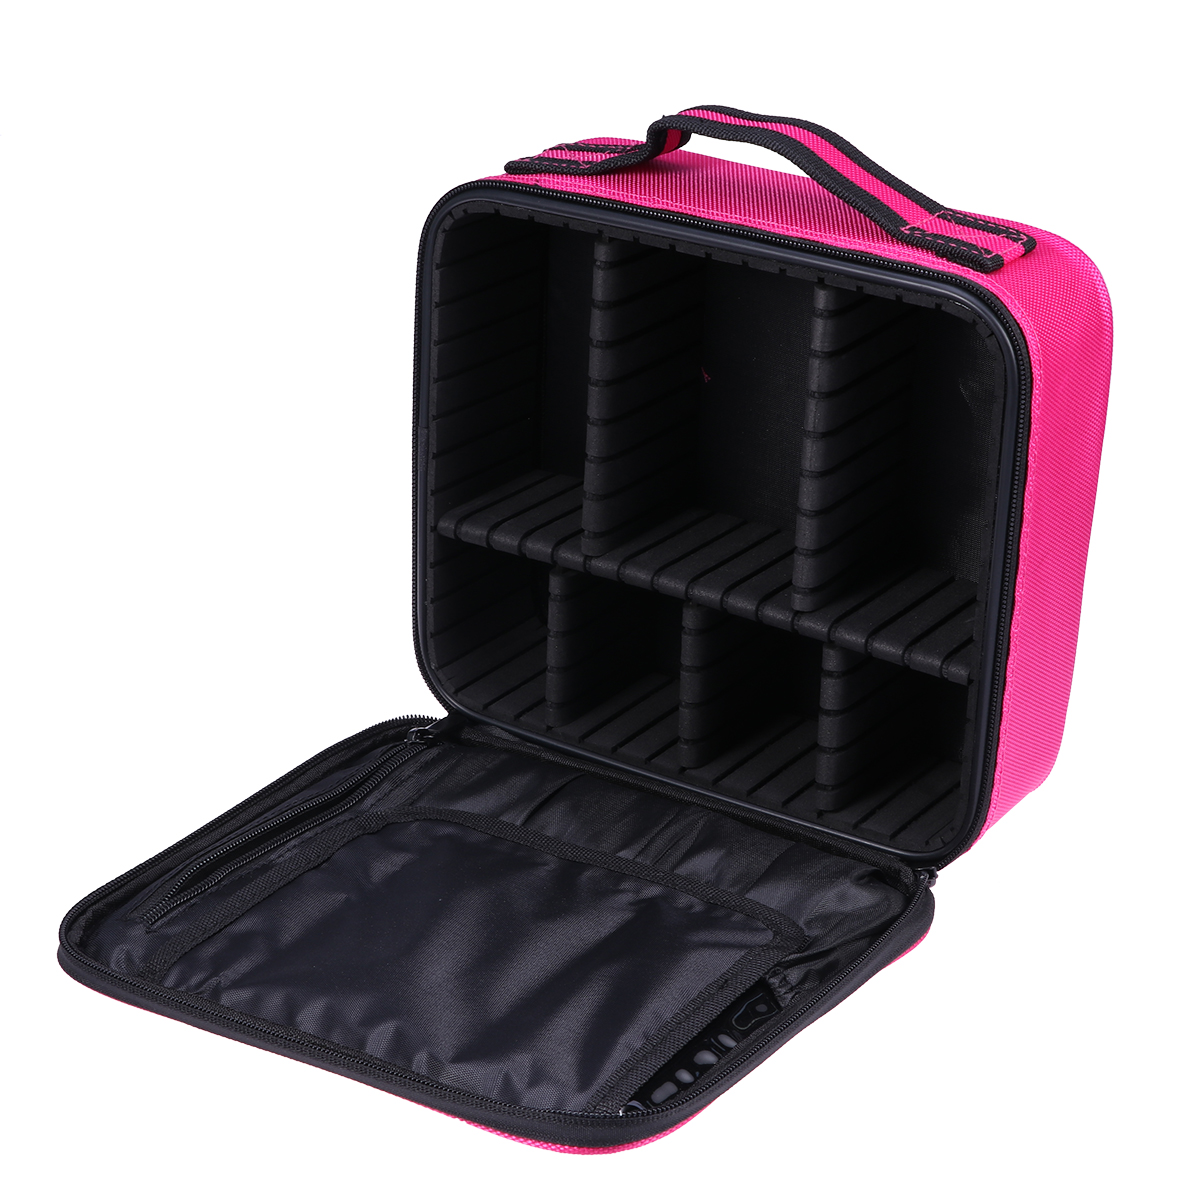 1pc Professional Multi-functional Cosmetic Travel Bag Makeup Storage Bage With Brush Pockets